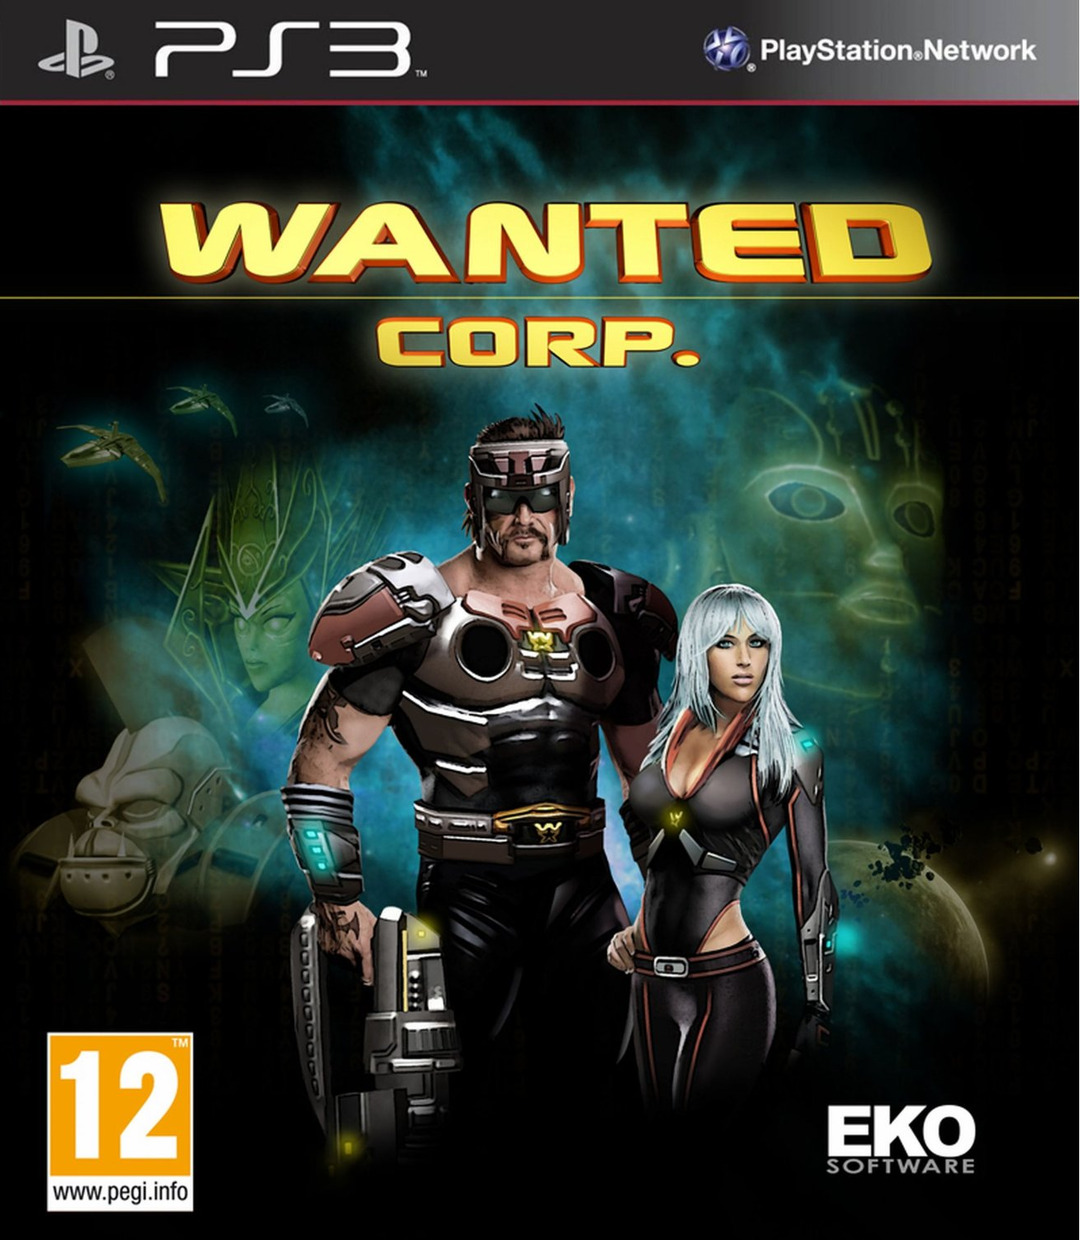 jaquette-wanted-corp-playstation-3-ps3-cover-avant-g-1315326077.jpg